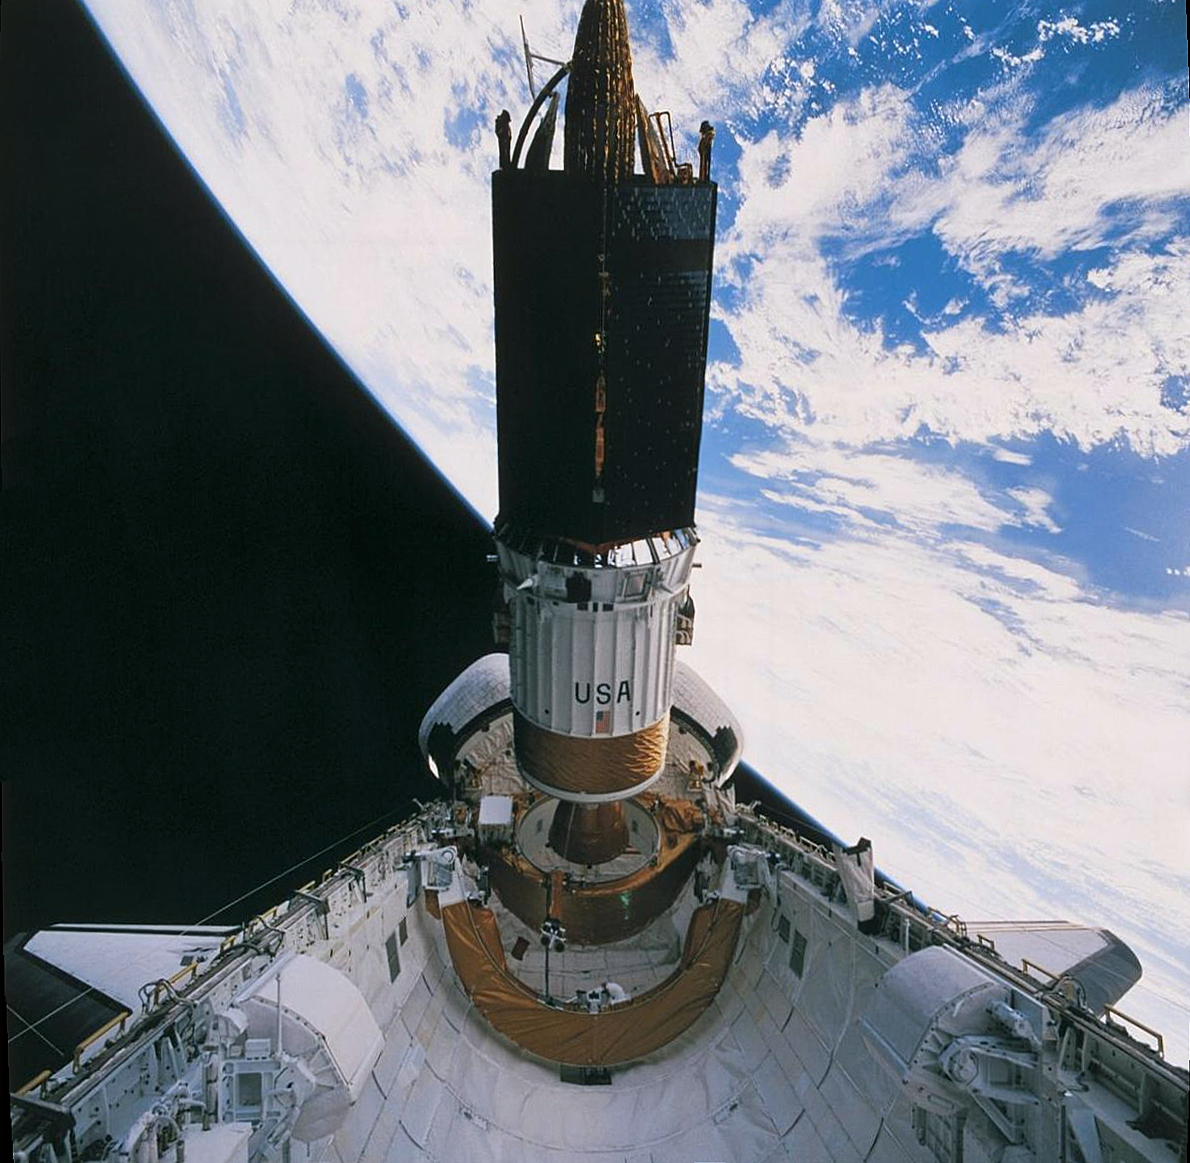 space shuttle upper stage - photo #32